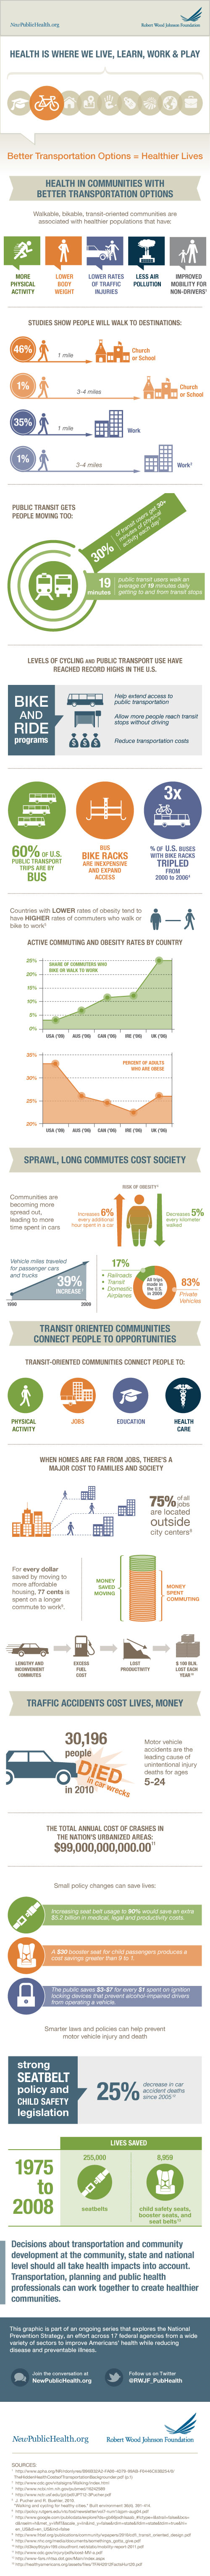 RWJF Public Transportation Health Benefits - infographic